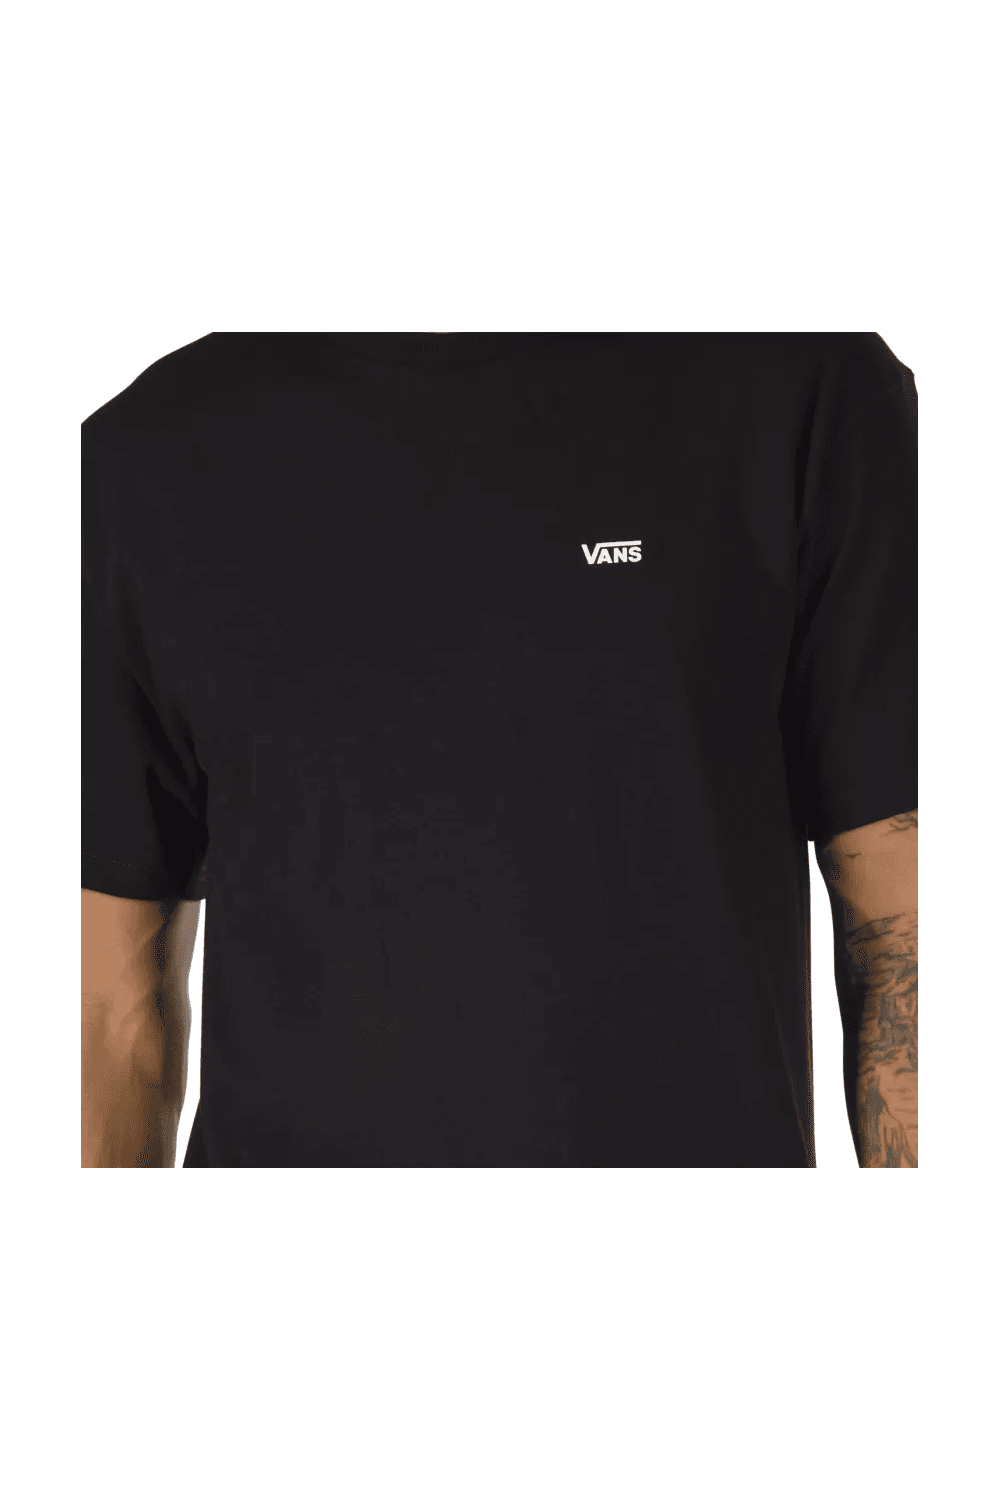 Vans Vans Ss T Shirt Mn Left Chest Logo Departments From Fresh Pop Uk